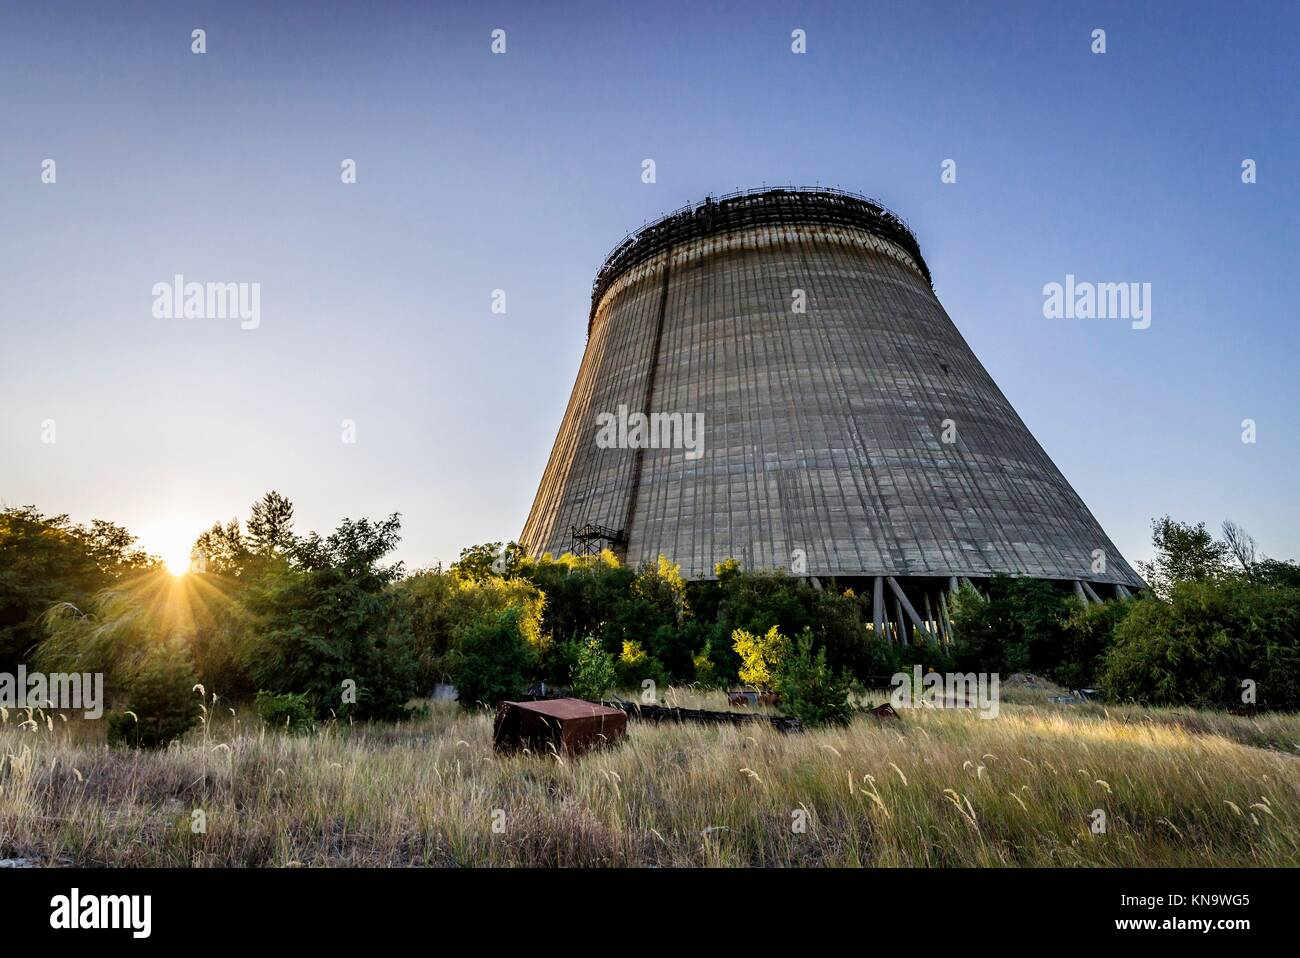 Cooling tower of Chernobyl Nuclear Power Plant in Zone of Alienation around the nuclear reactor disaster in Ukraine. - Stock Image